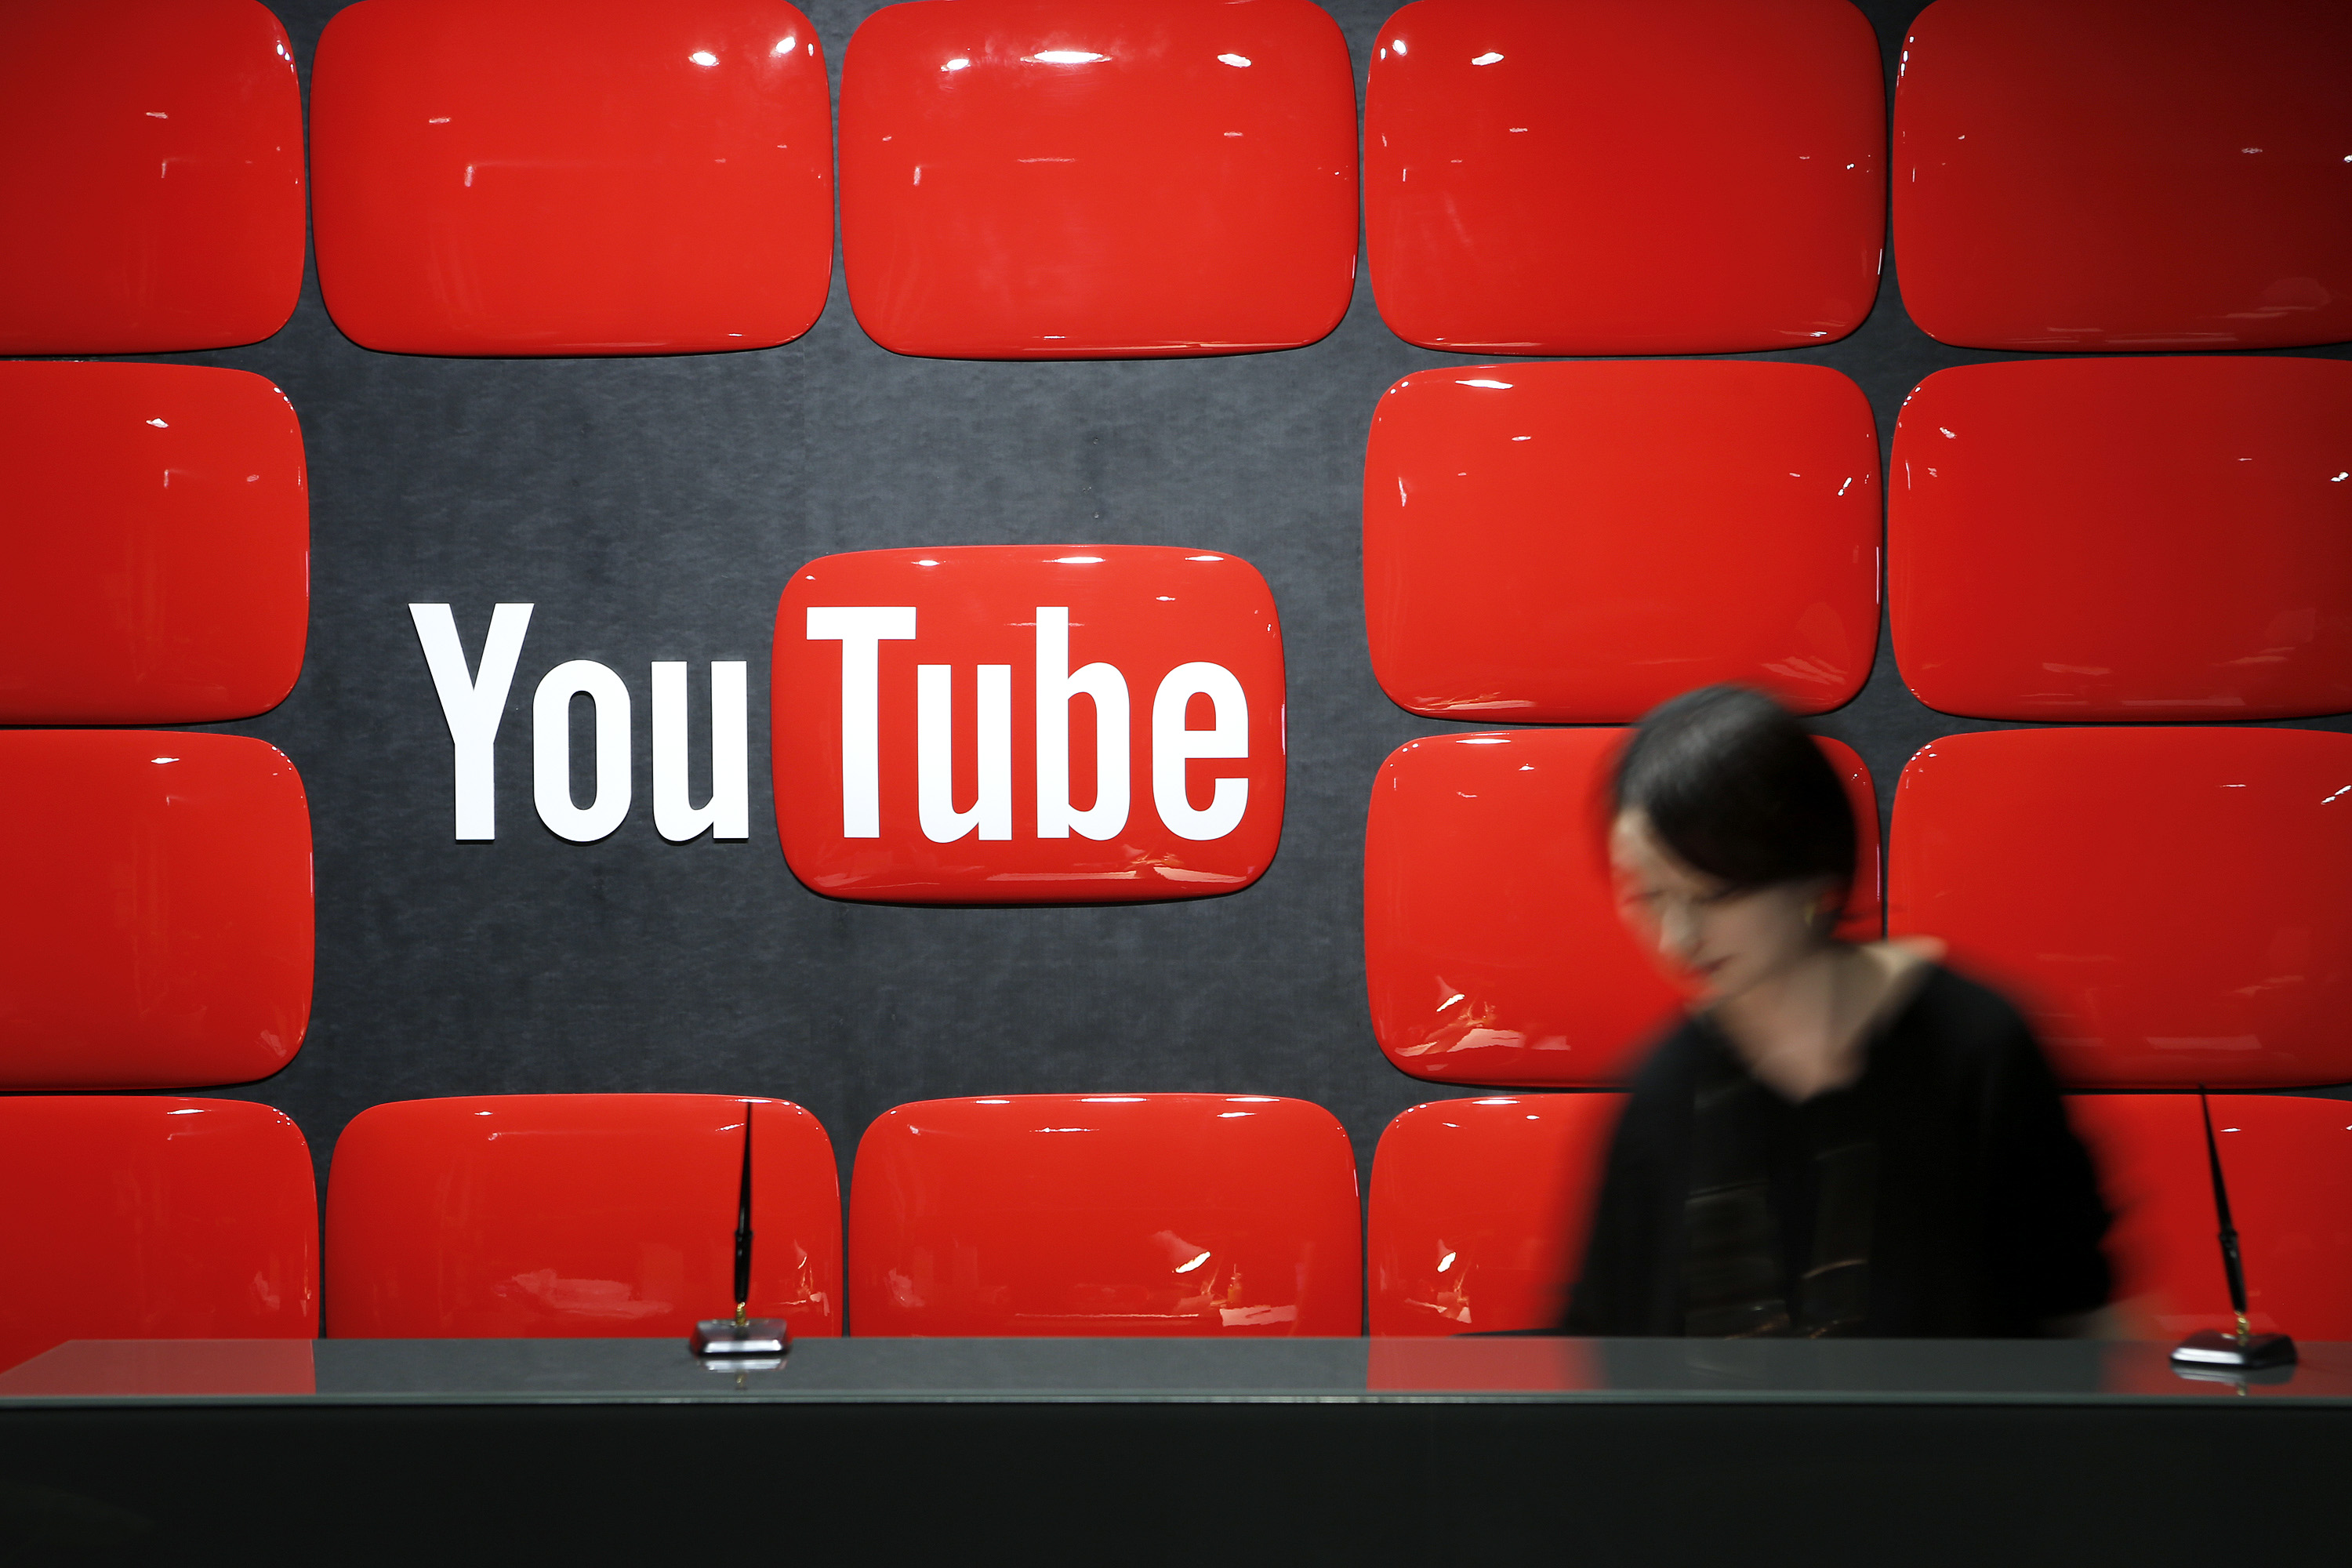 Google Inc.'s YouTube logo is displayed behind the reception desk at the company's YouTube Space studio in Tokyo, Japan, on Saturday, March 30, 2013.